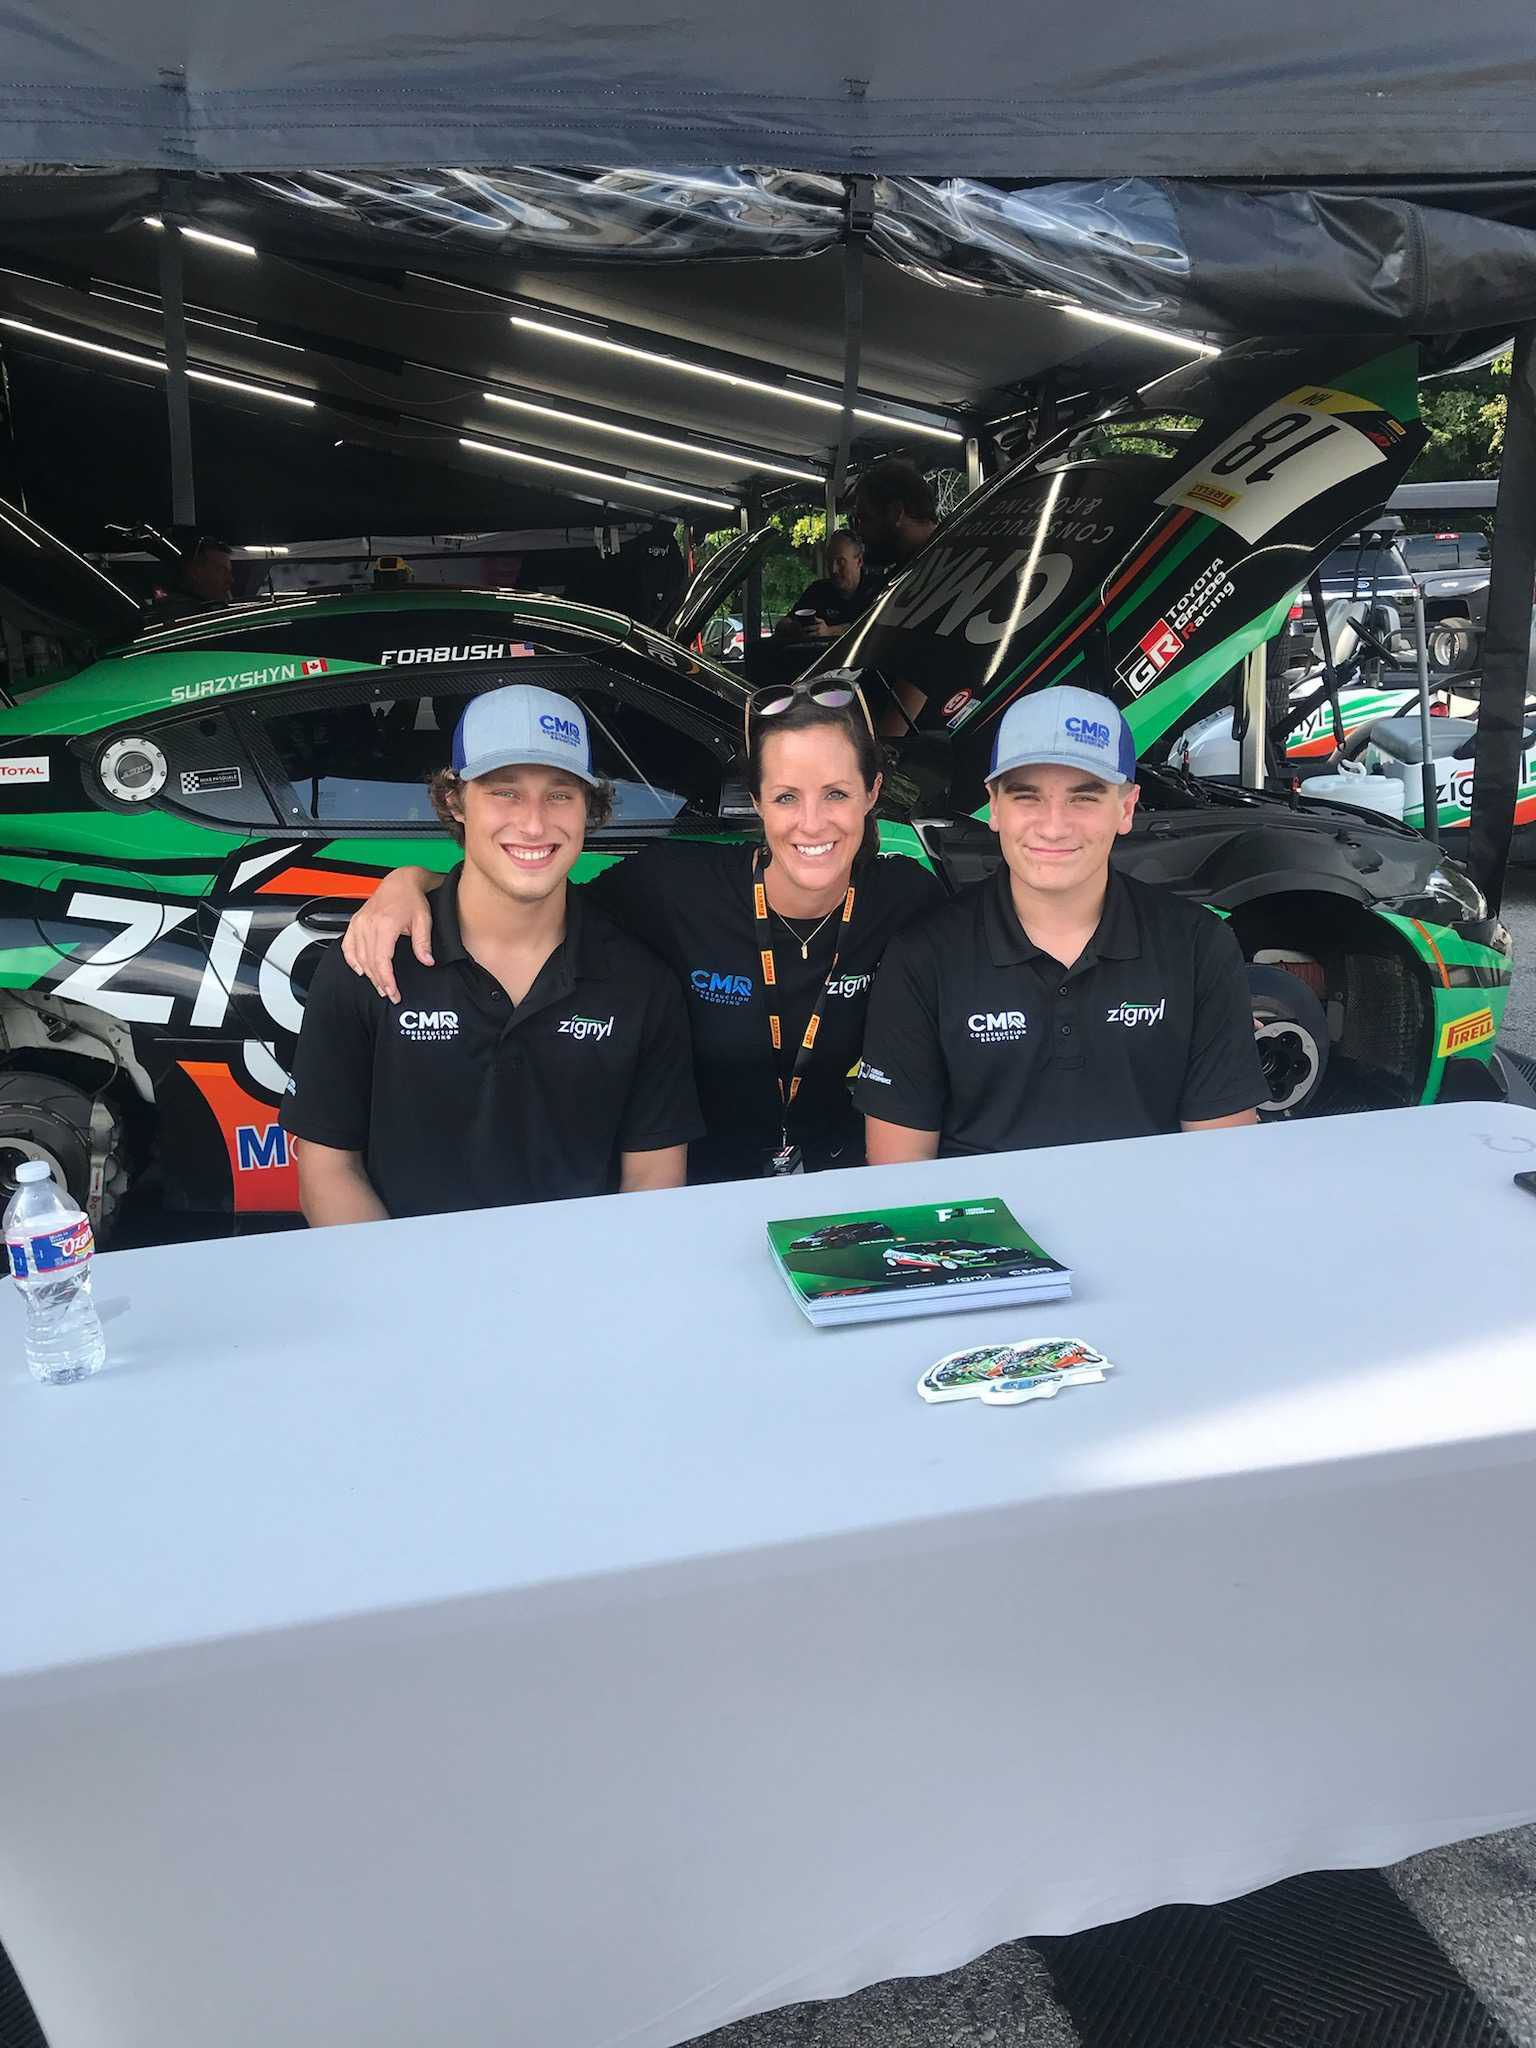 Luke Rumberg & Caleb Bacon each had podium results this weekend in the Touring Car field. Although Caleb had a heartbreaking tire puncture on the FINAL LAP of Race 2 while running 3rd, he retains the points lead going into Watkins Glen.